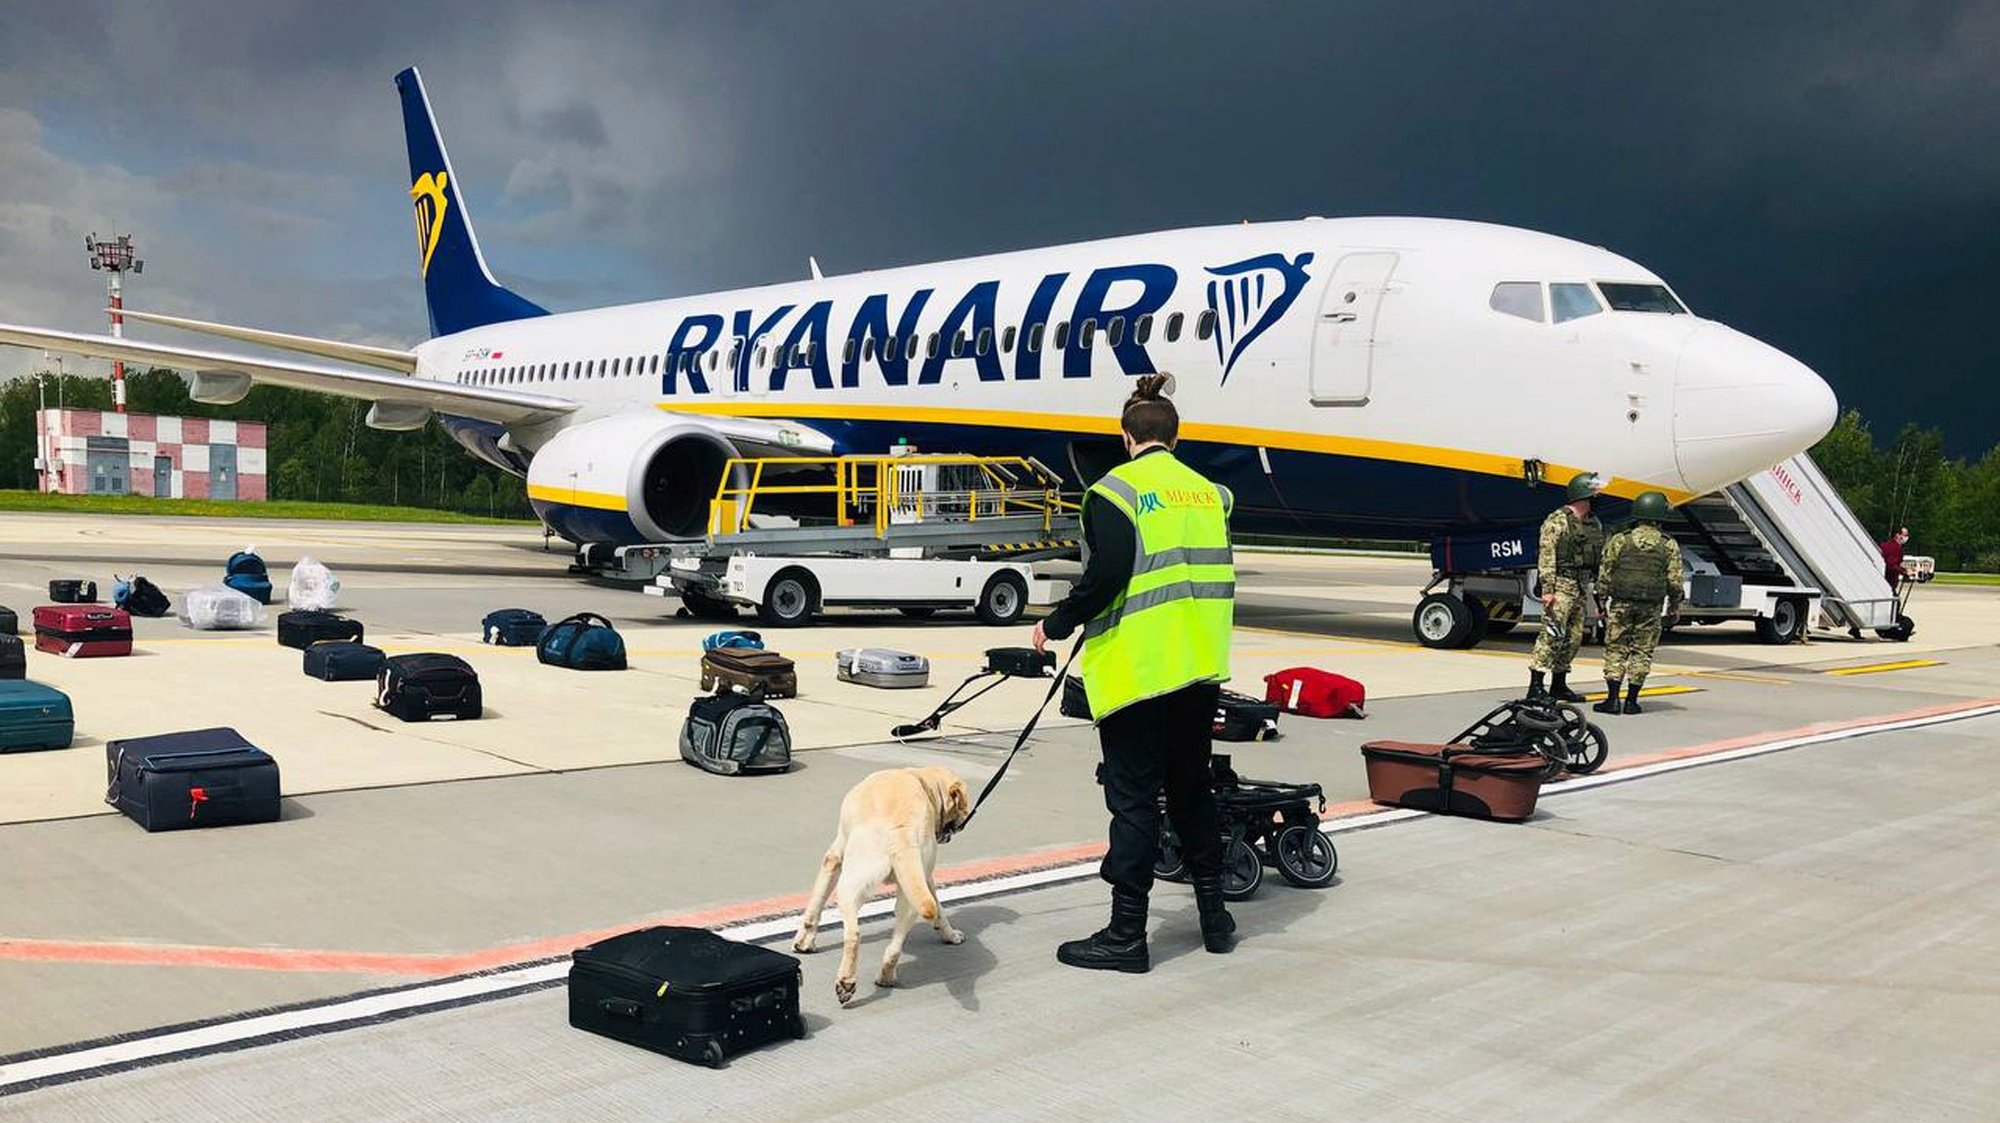 epa09224989 A handout photo made available by ONLINER.BY shows security with a sniffer dog checking the luggage of passengers in front of Ryanair Boeing 737-8AS (flight FR4978), carrying opposition figure Roman Protasevich, in Minsk, Belarus, 23 May 2021 (issued 24 May 2021). A Ryanair flight from Athens, Greece to Vilnius, Lithuania, with Belarus' opposition journalist Roman Protasevich onboard, was diverted and forced to land in Minsk on 23 May 2021, after an alleged bomb threat. Protasevich was detained by Belarusian Police after landing, as Belarusian Human Rights Center 'Viasna' reports, Lithuanian President Gitanas Nauseda demanded the immediate release of Protasevich.  EPA/ONLINER.BY HANDOUT -- BEST QUALITY AVAILABLE -- HANDOUT EDITORIAL USE ONLY/NO SALES